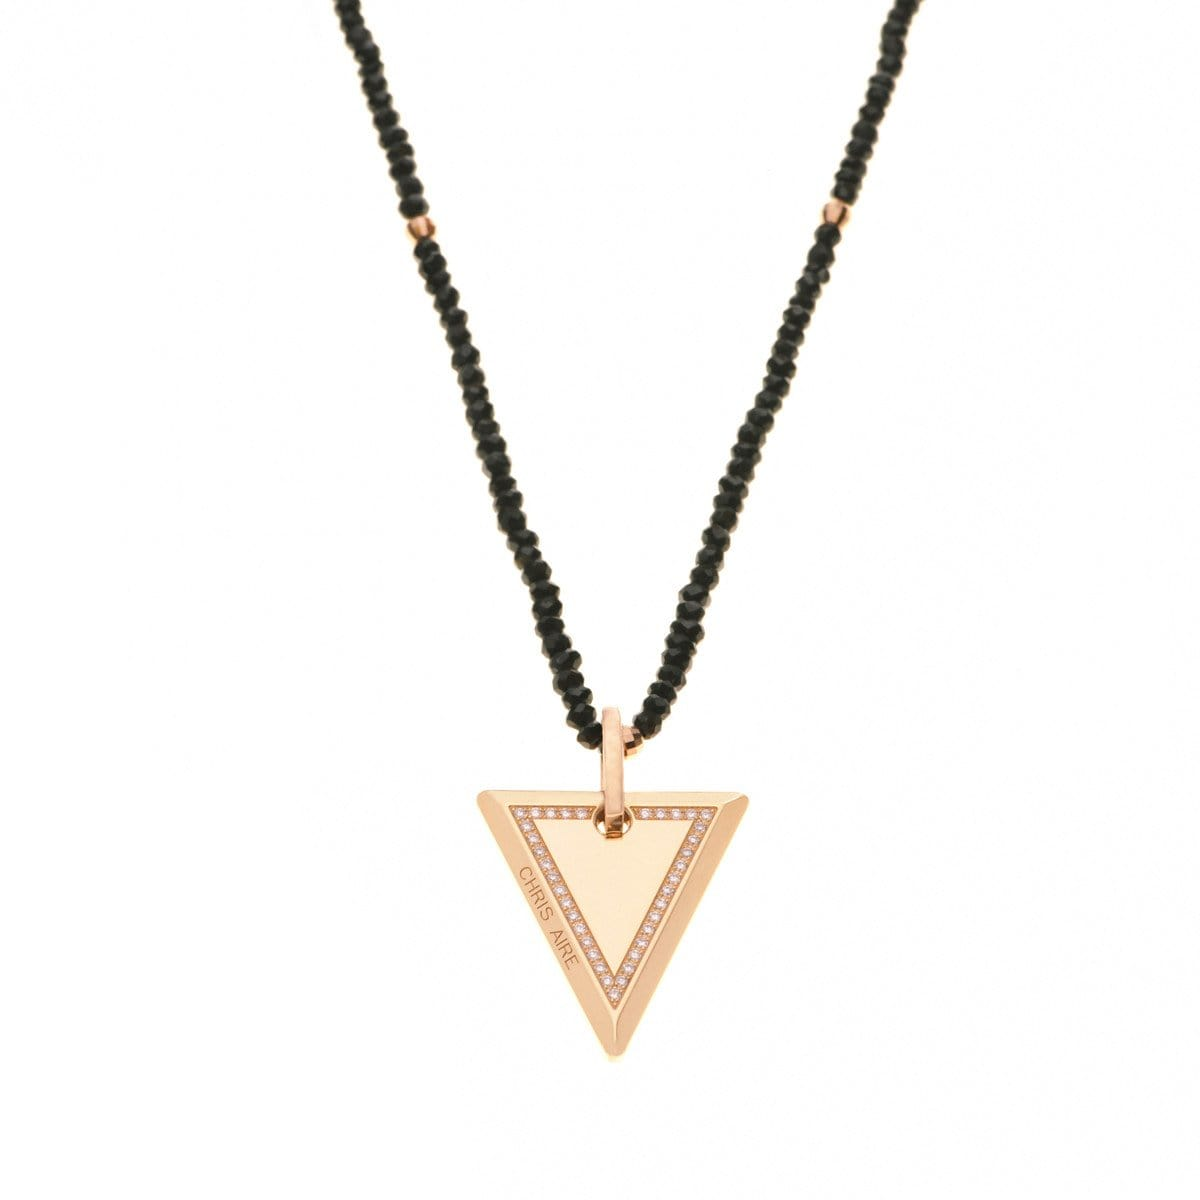 MEDIUM TRI-TAG NECKLACE - Chris Aire Fine Jewelry & Timepieces